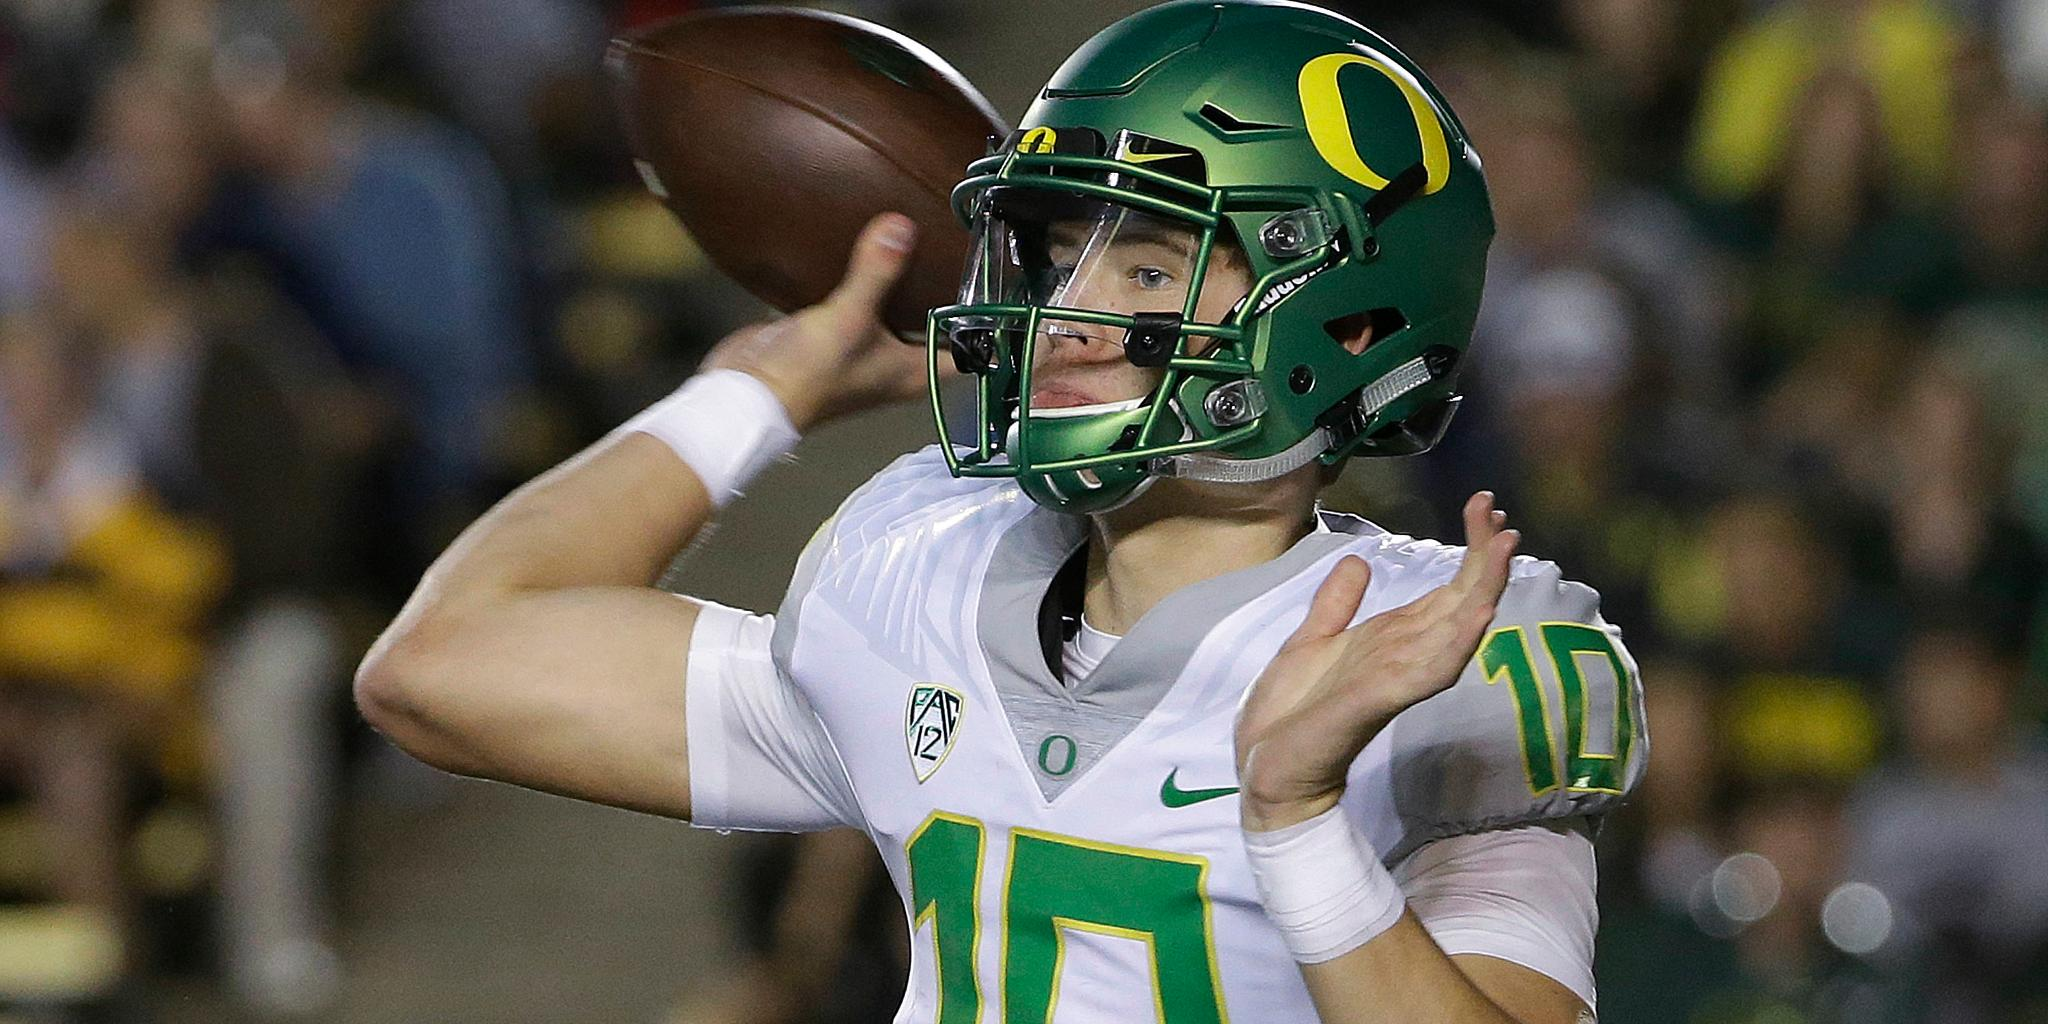 Who's next?  10 QB prospects to watch for the 2019 @NFLDraft: https://t.co/4dvw5wDRl9 (via @BuckyBrooks) https://t.co/fUECU9k8wm